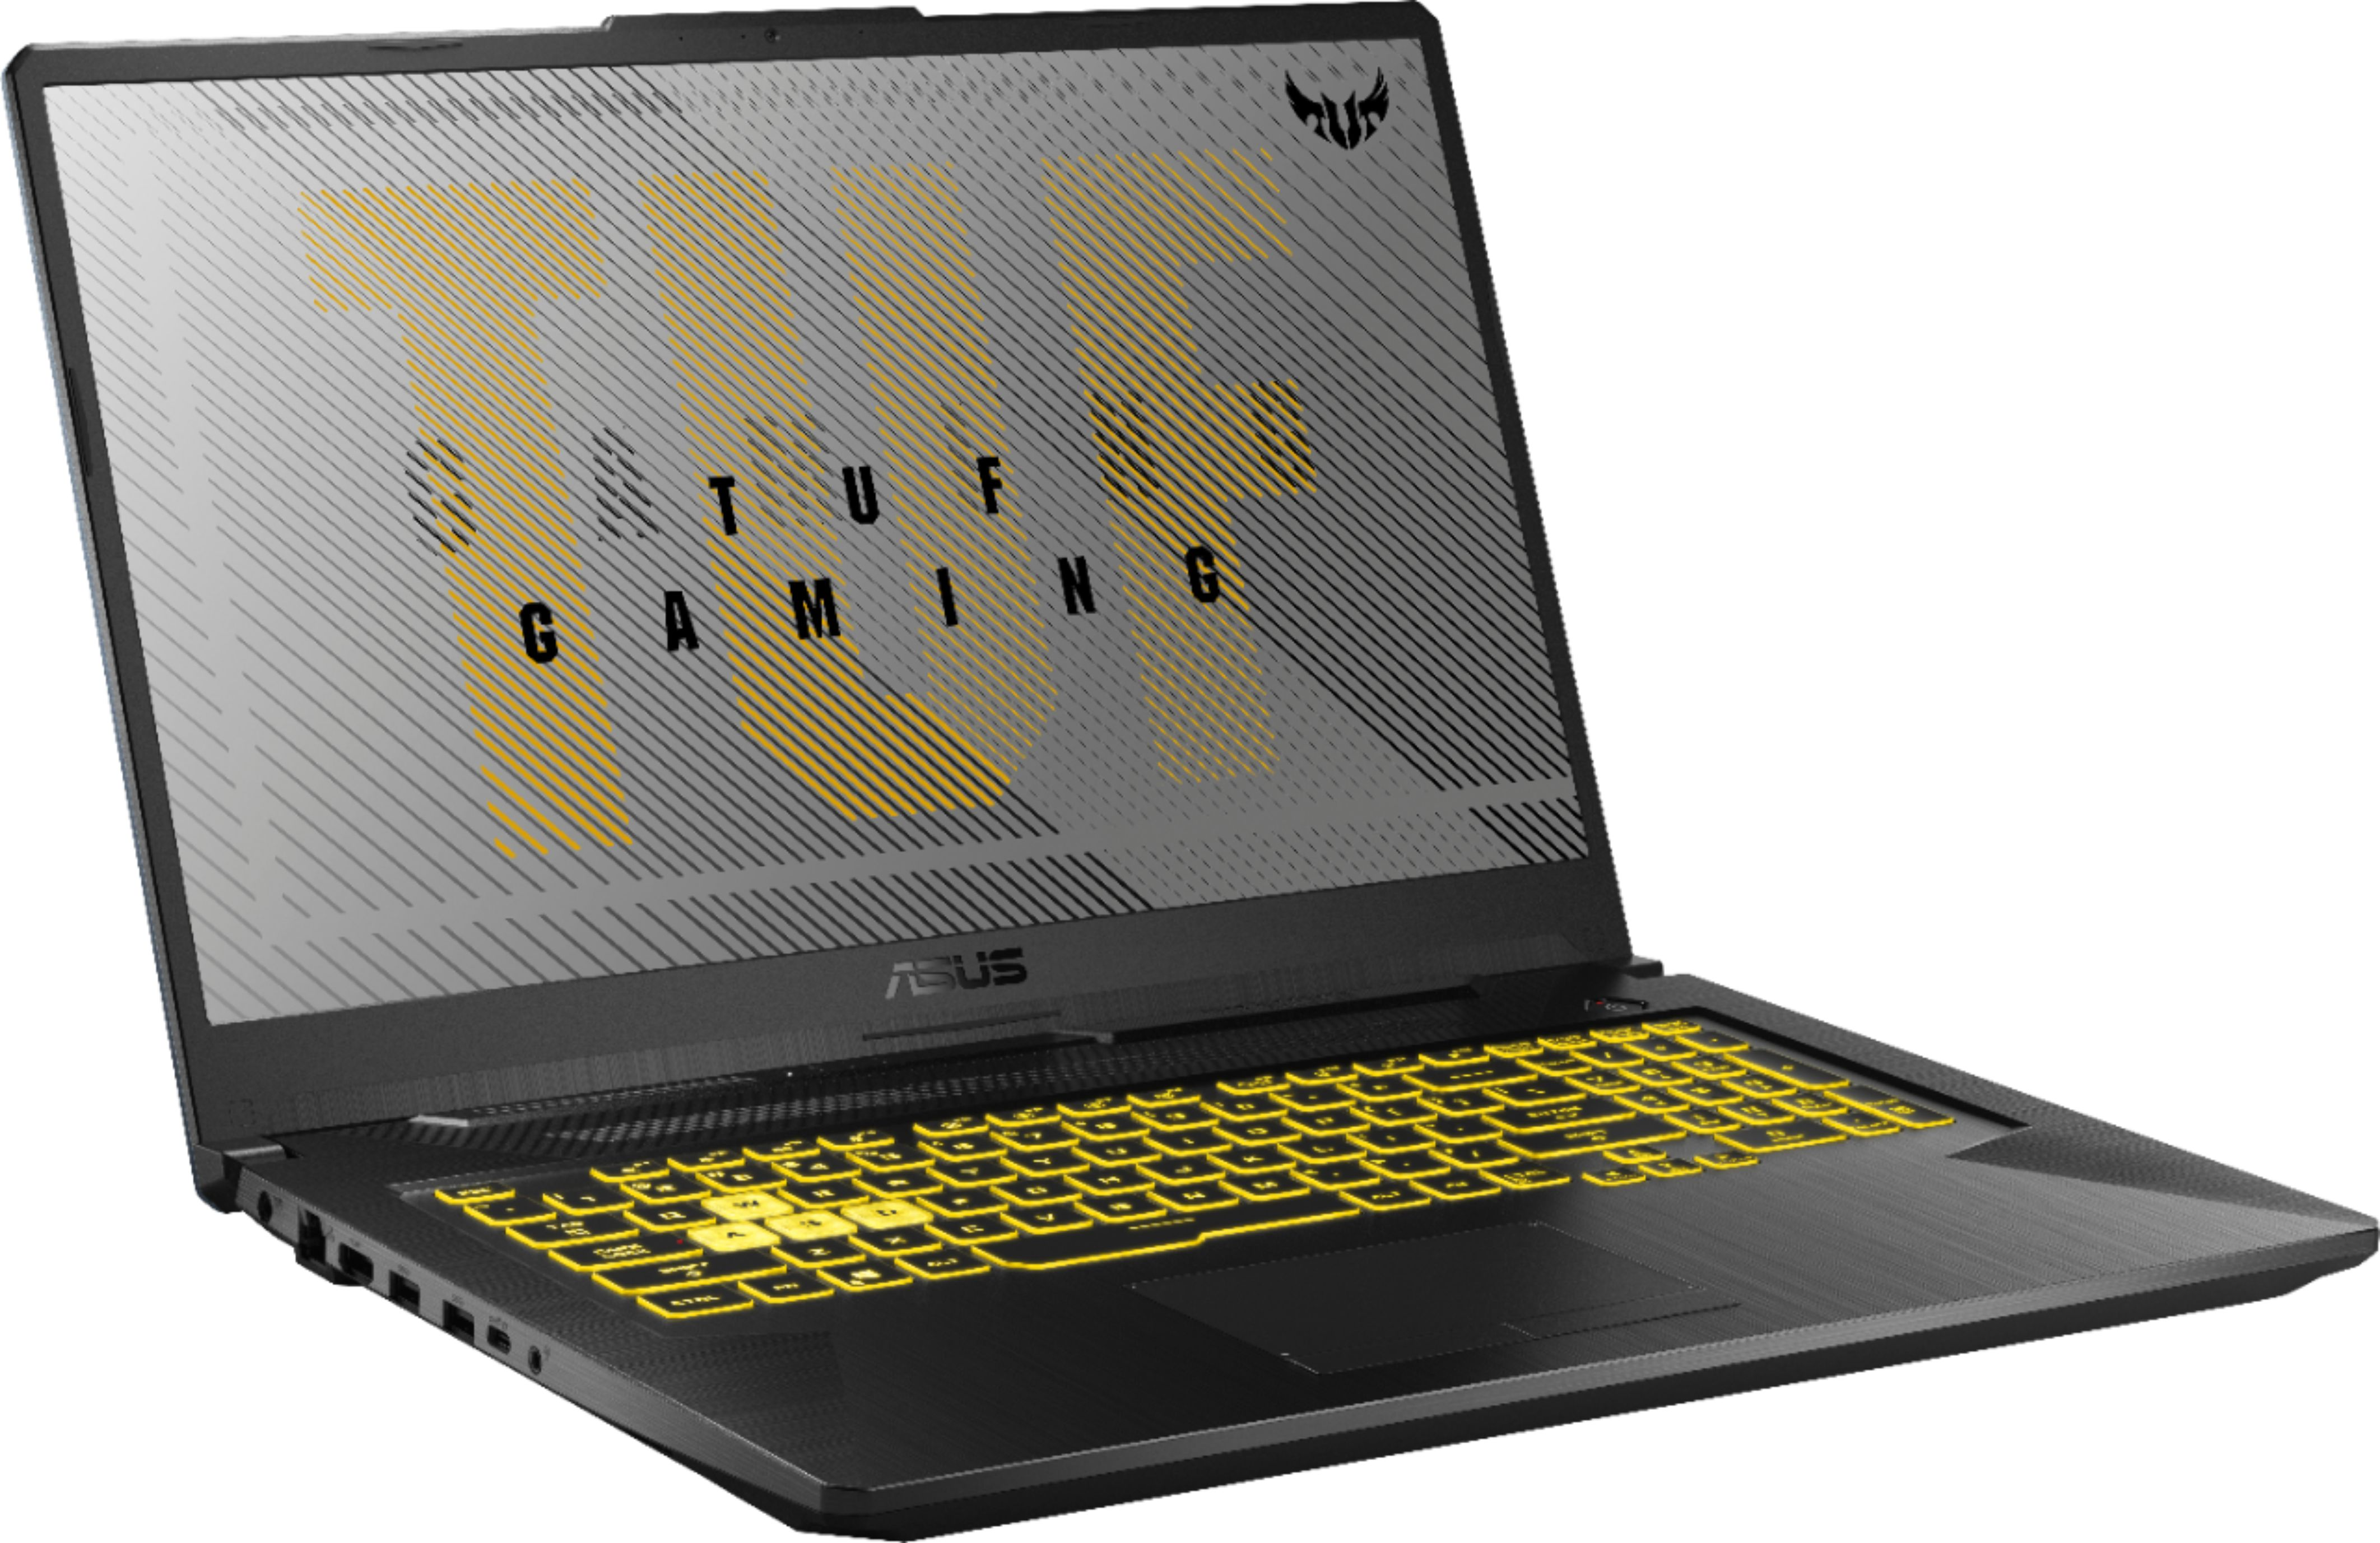 """Angle Zoom. ASUS - TUF 17.3"""" Gaming Notebook - AMD Ryzen 7 4800H 16GB Memory - NVIDIA GeForce GTX 1660Ti - 1TB Solid State Drive - Fortress Gray."""